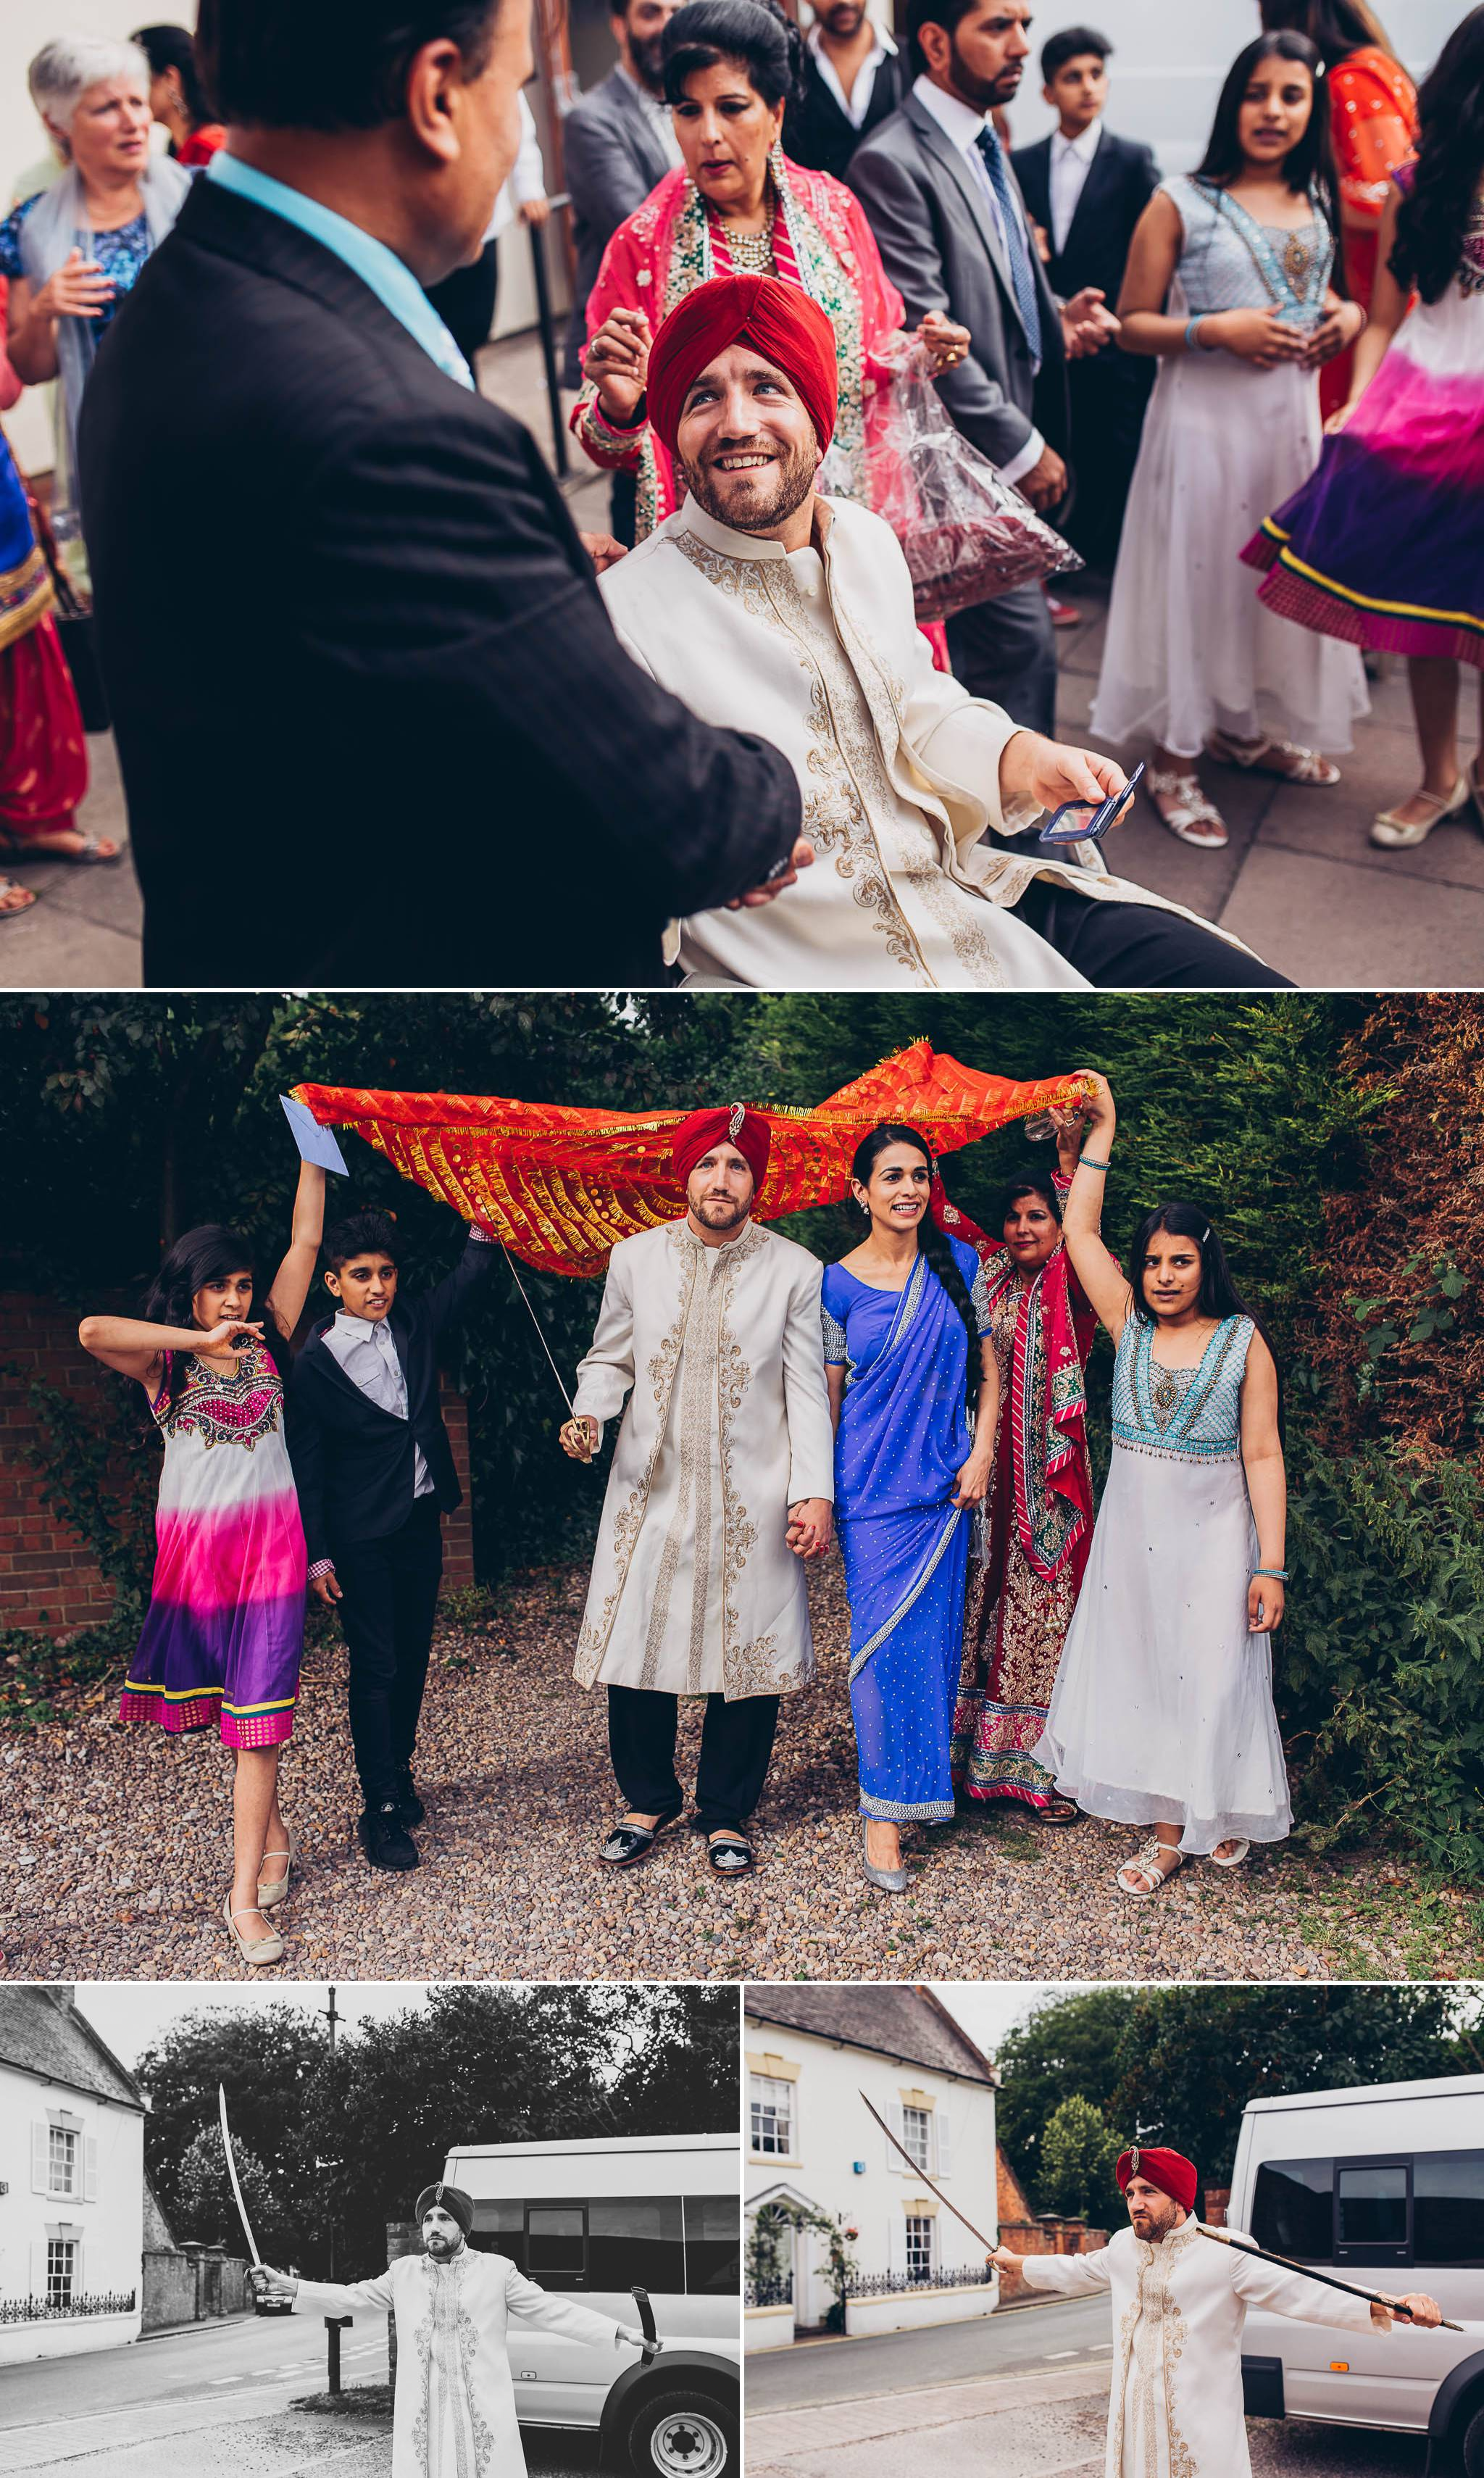 staffordshire-wedding-photography 2.jpg